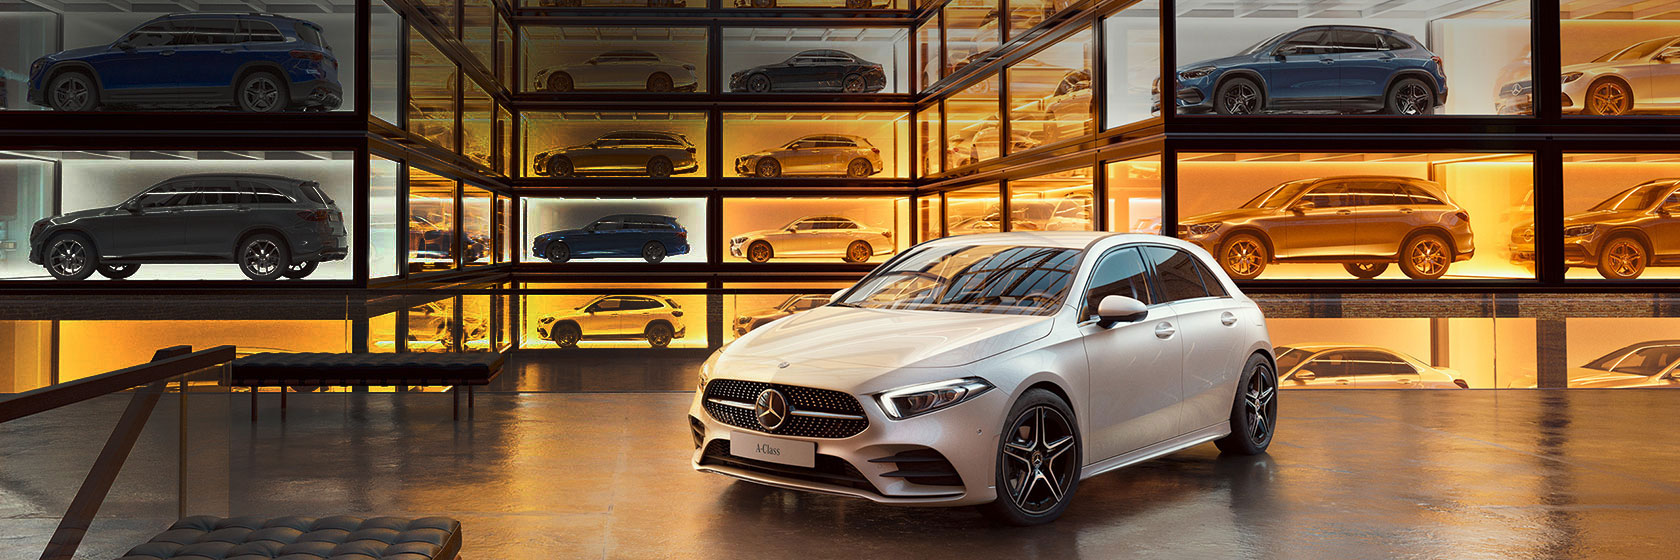 Mercedes-Benz Showroom Online